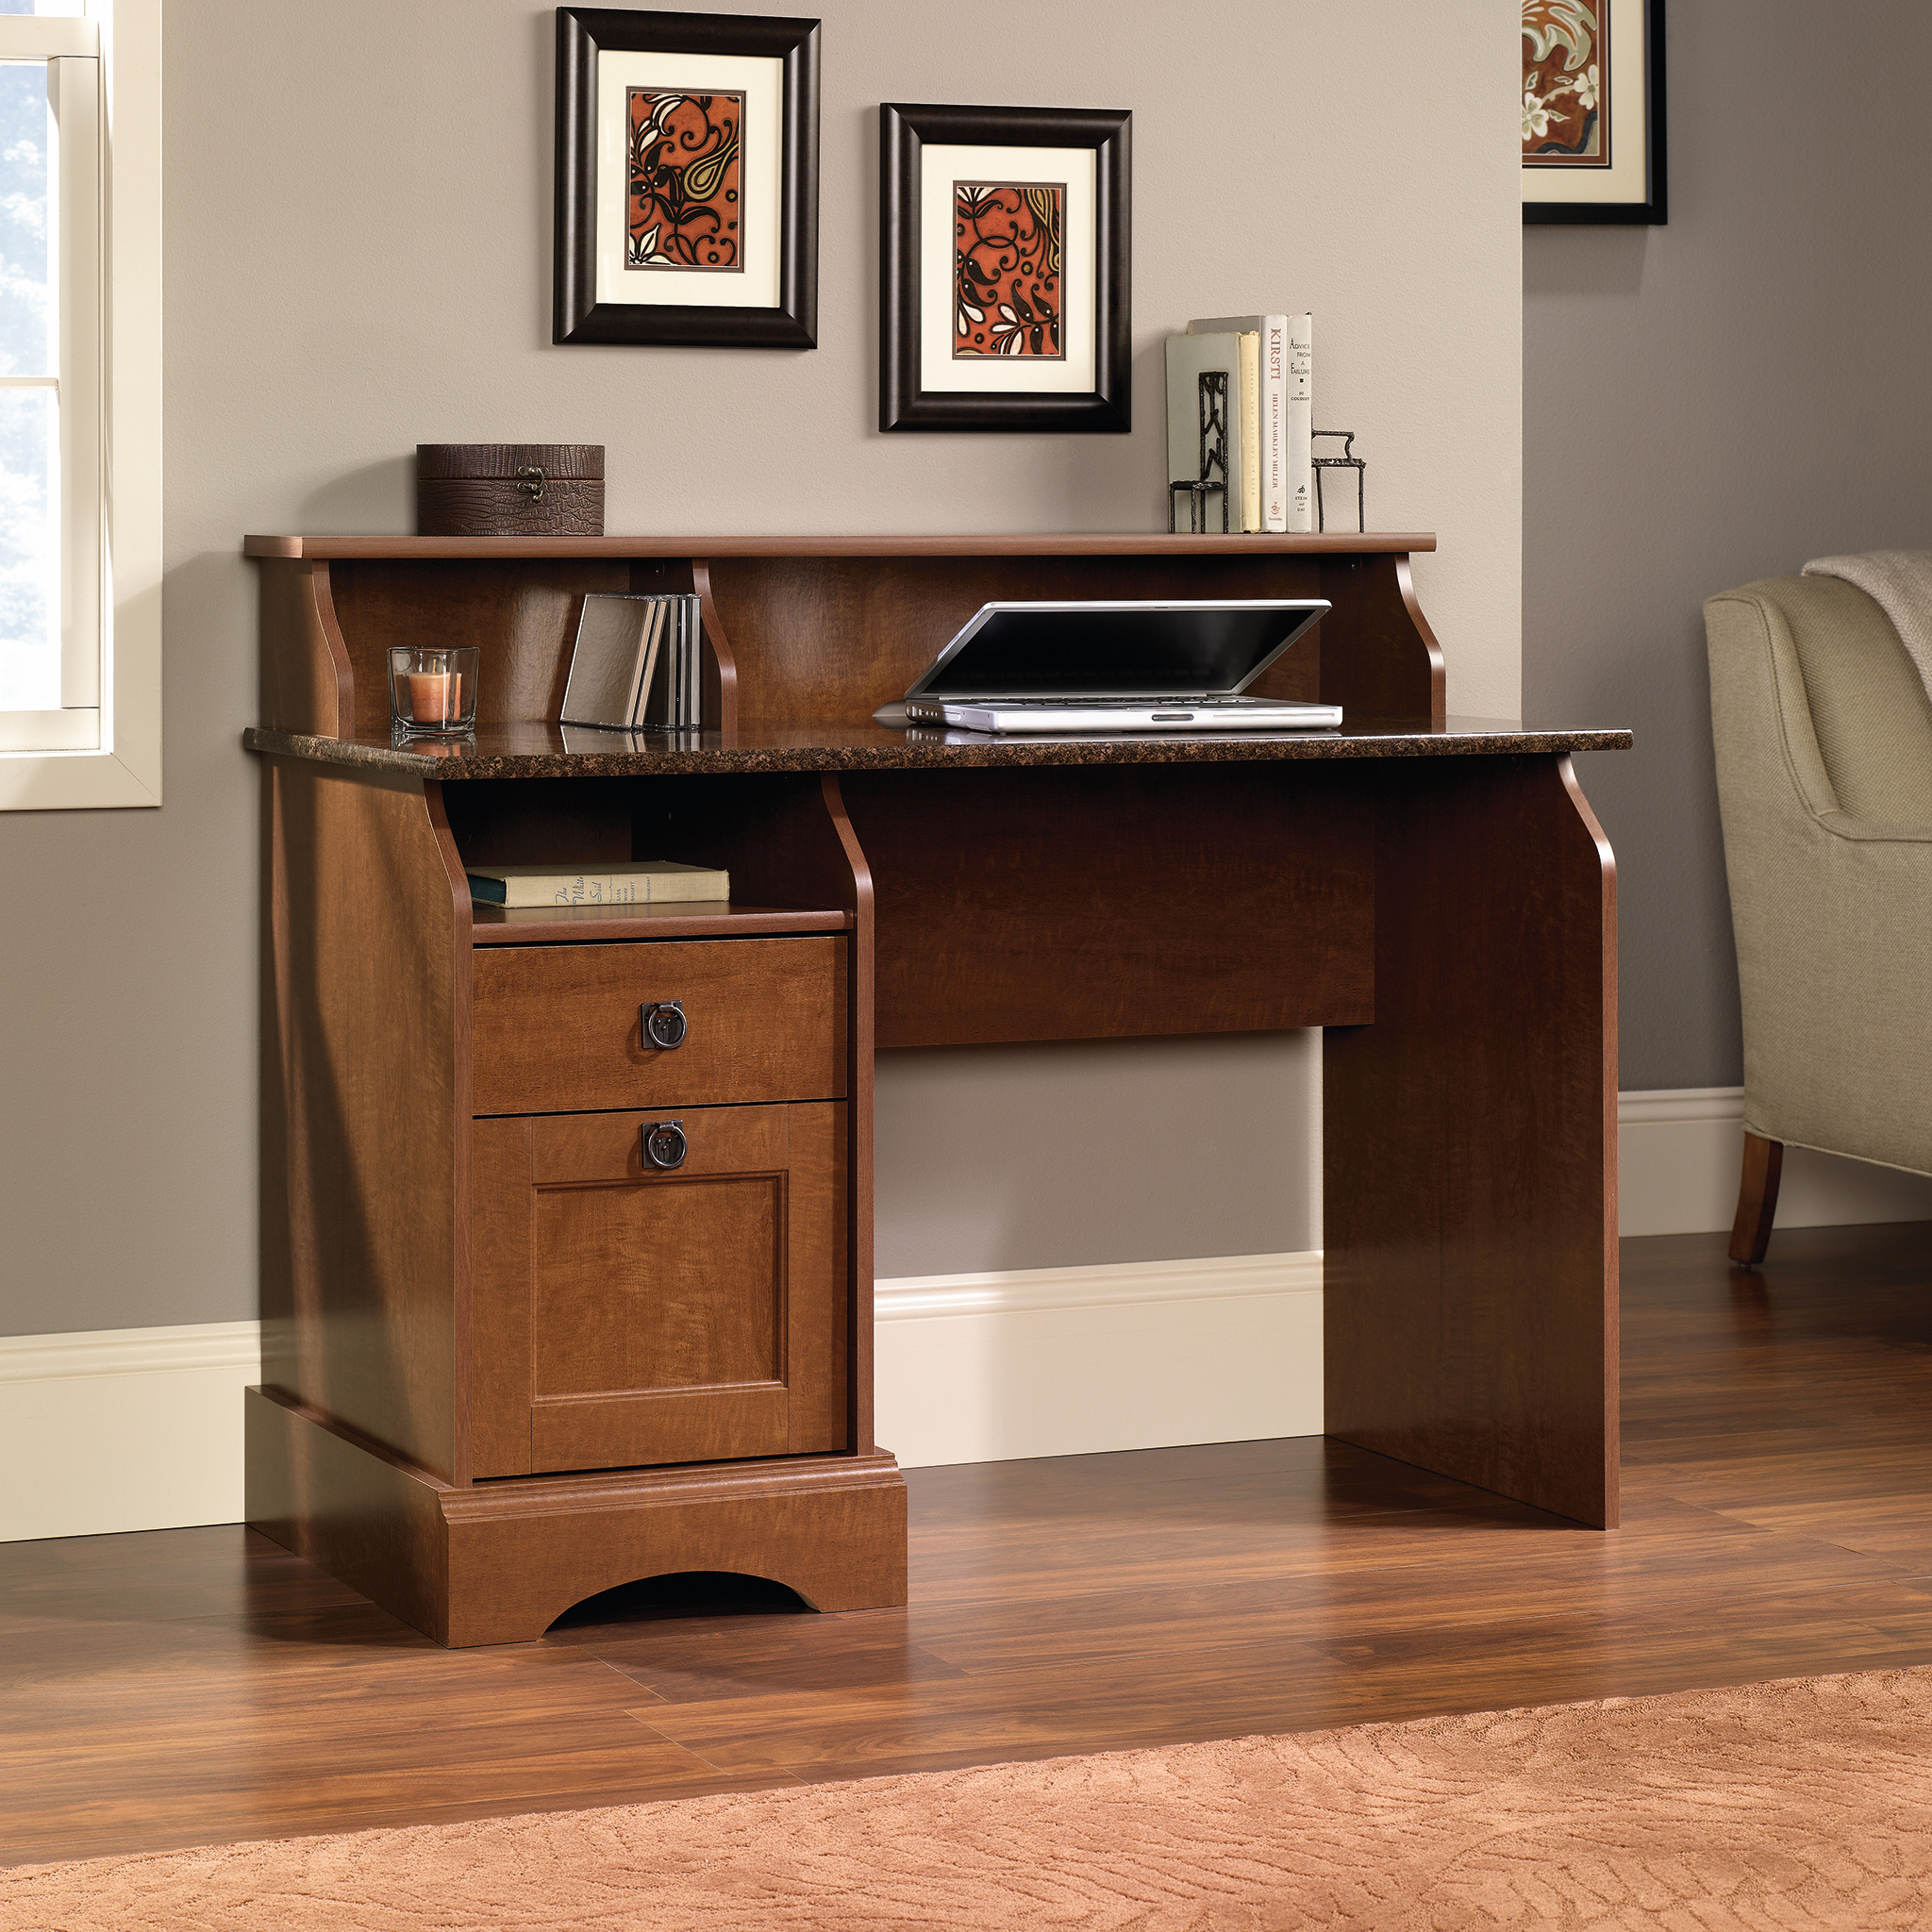 Teknik Office Farmhouse Desk with Autumn Maple Finish; a sunset granite accent desktop; two storage drawers and three storage cubbys